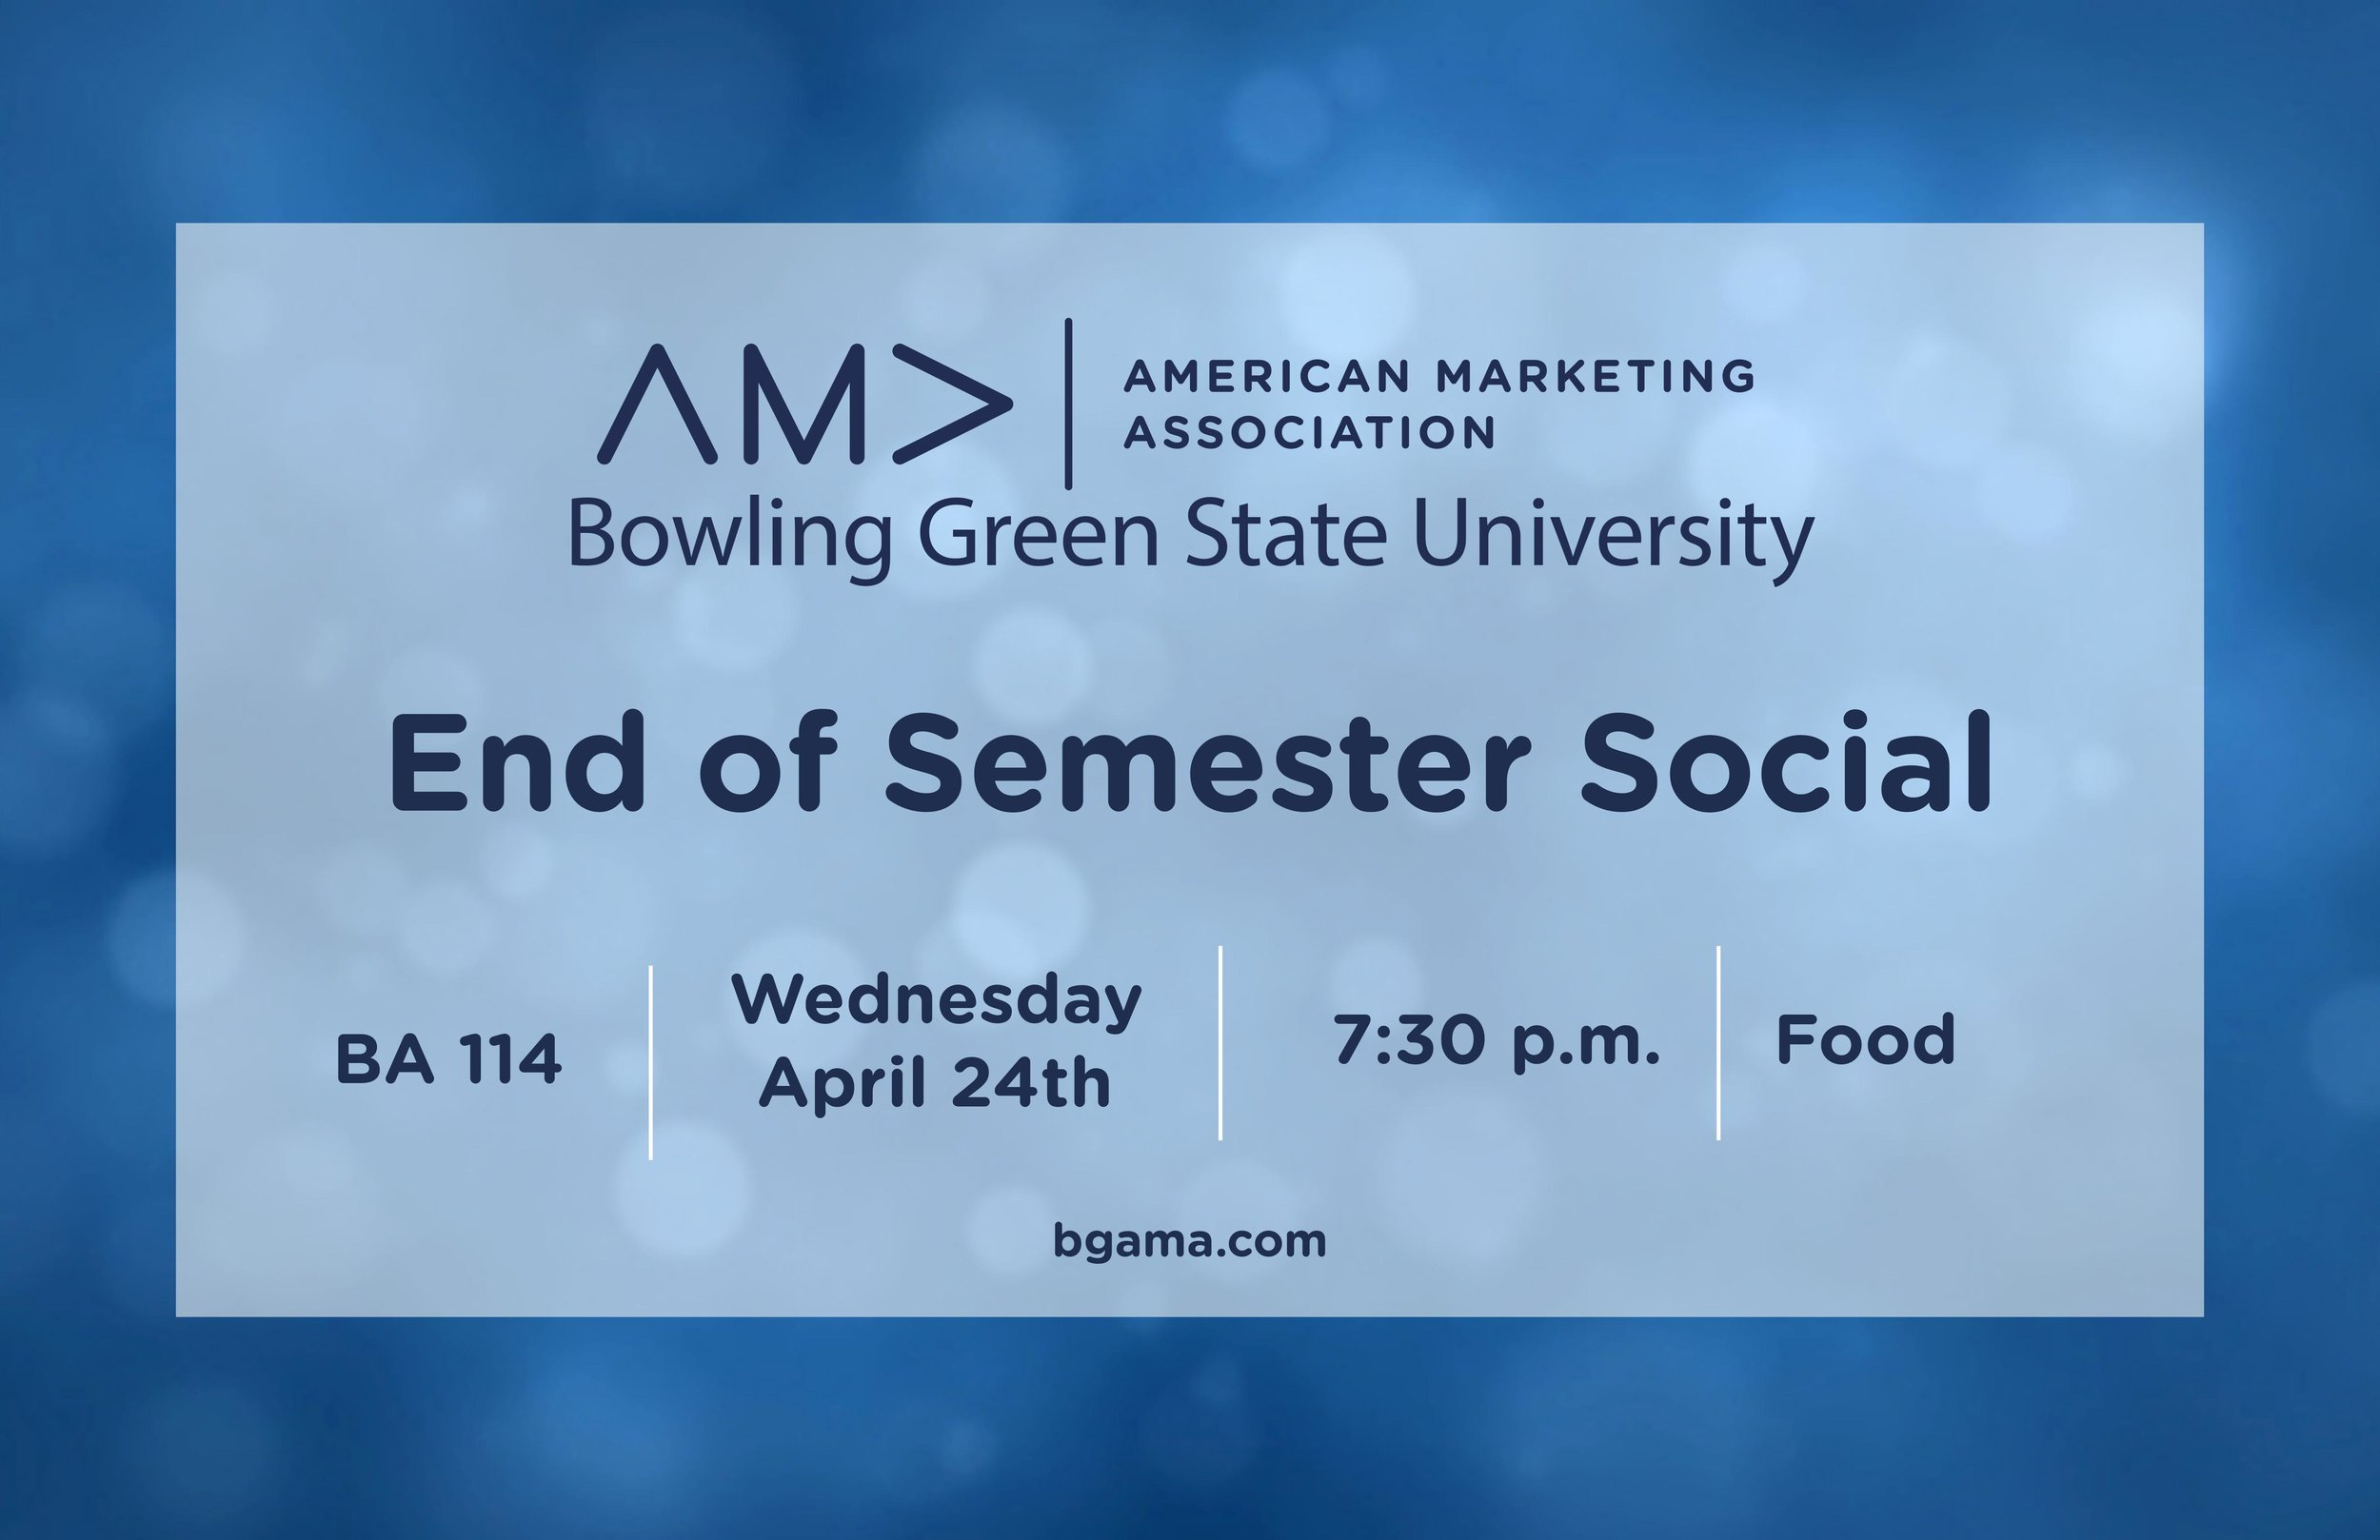 BGSU AMA End of Semester Social